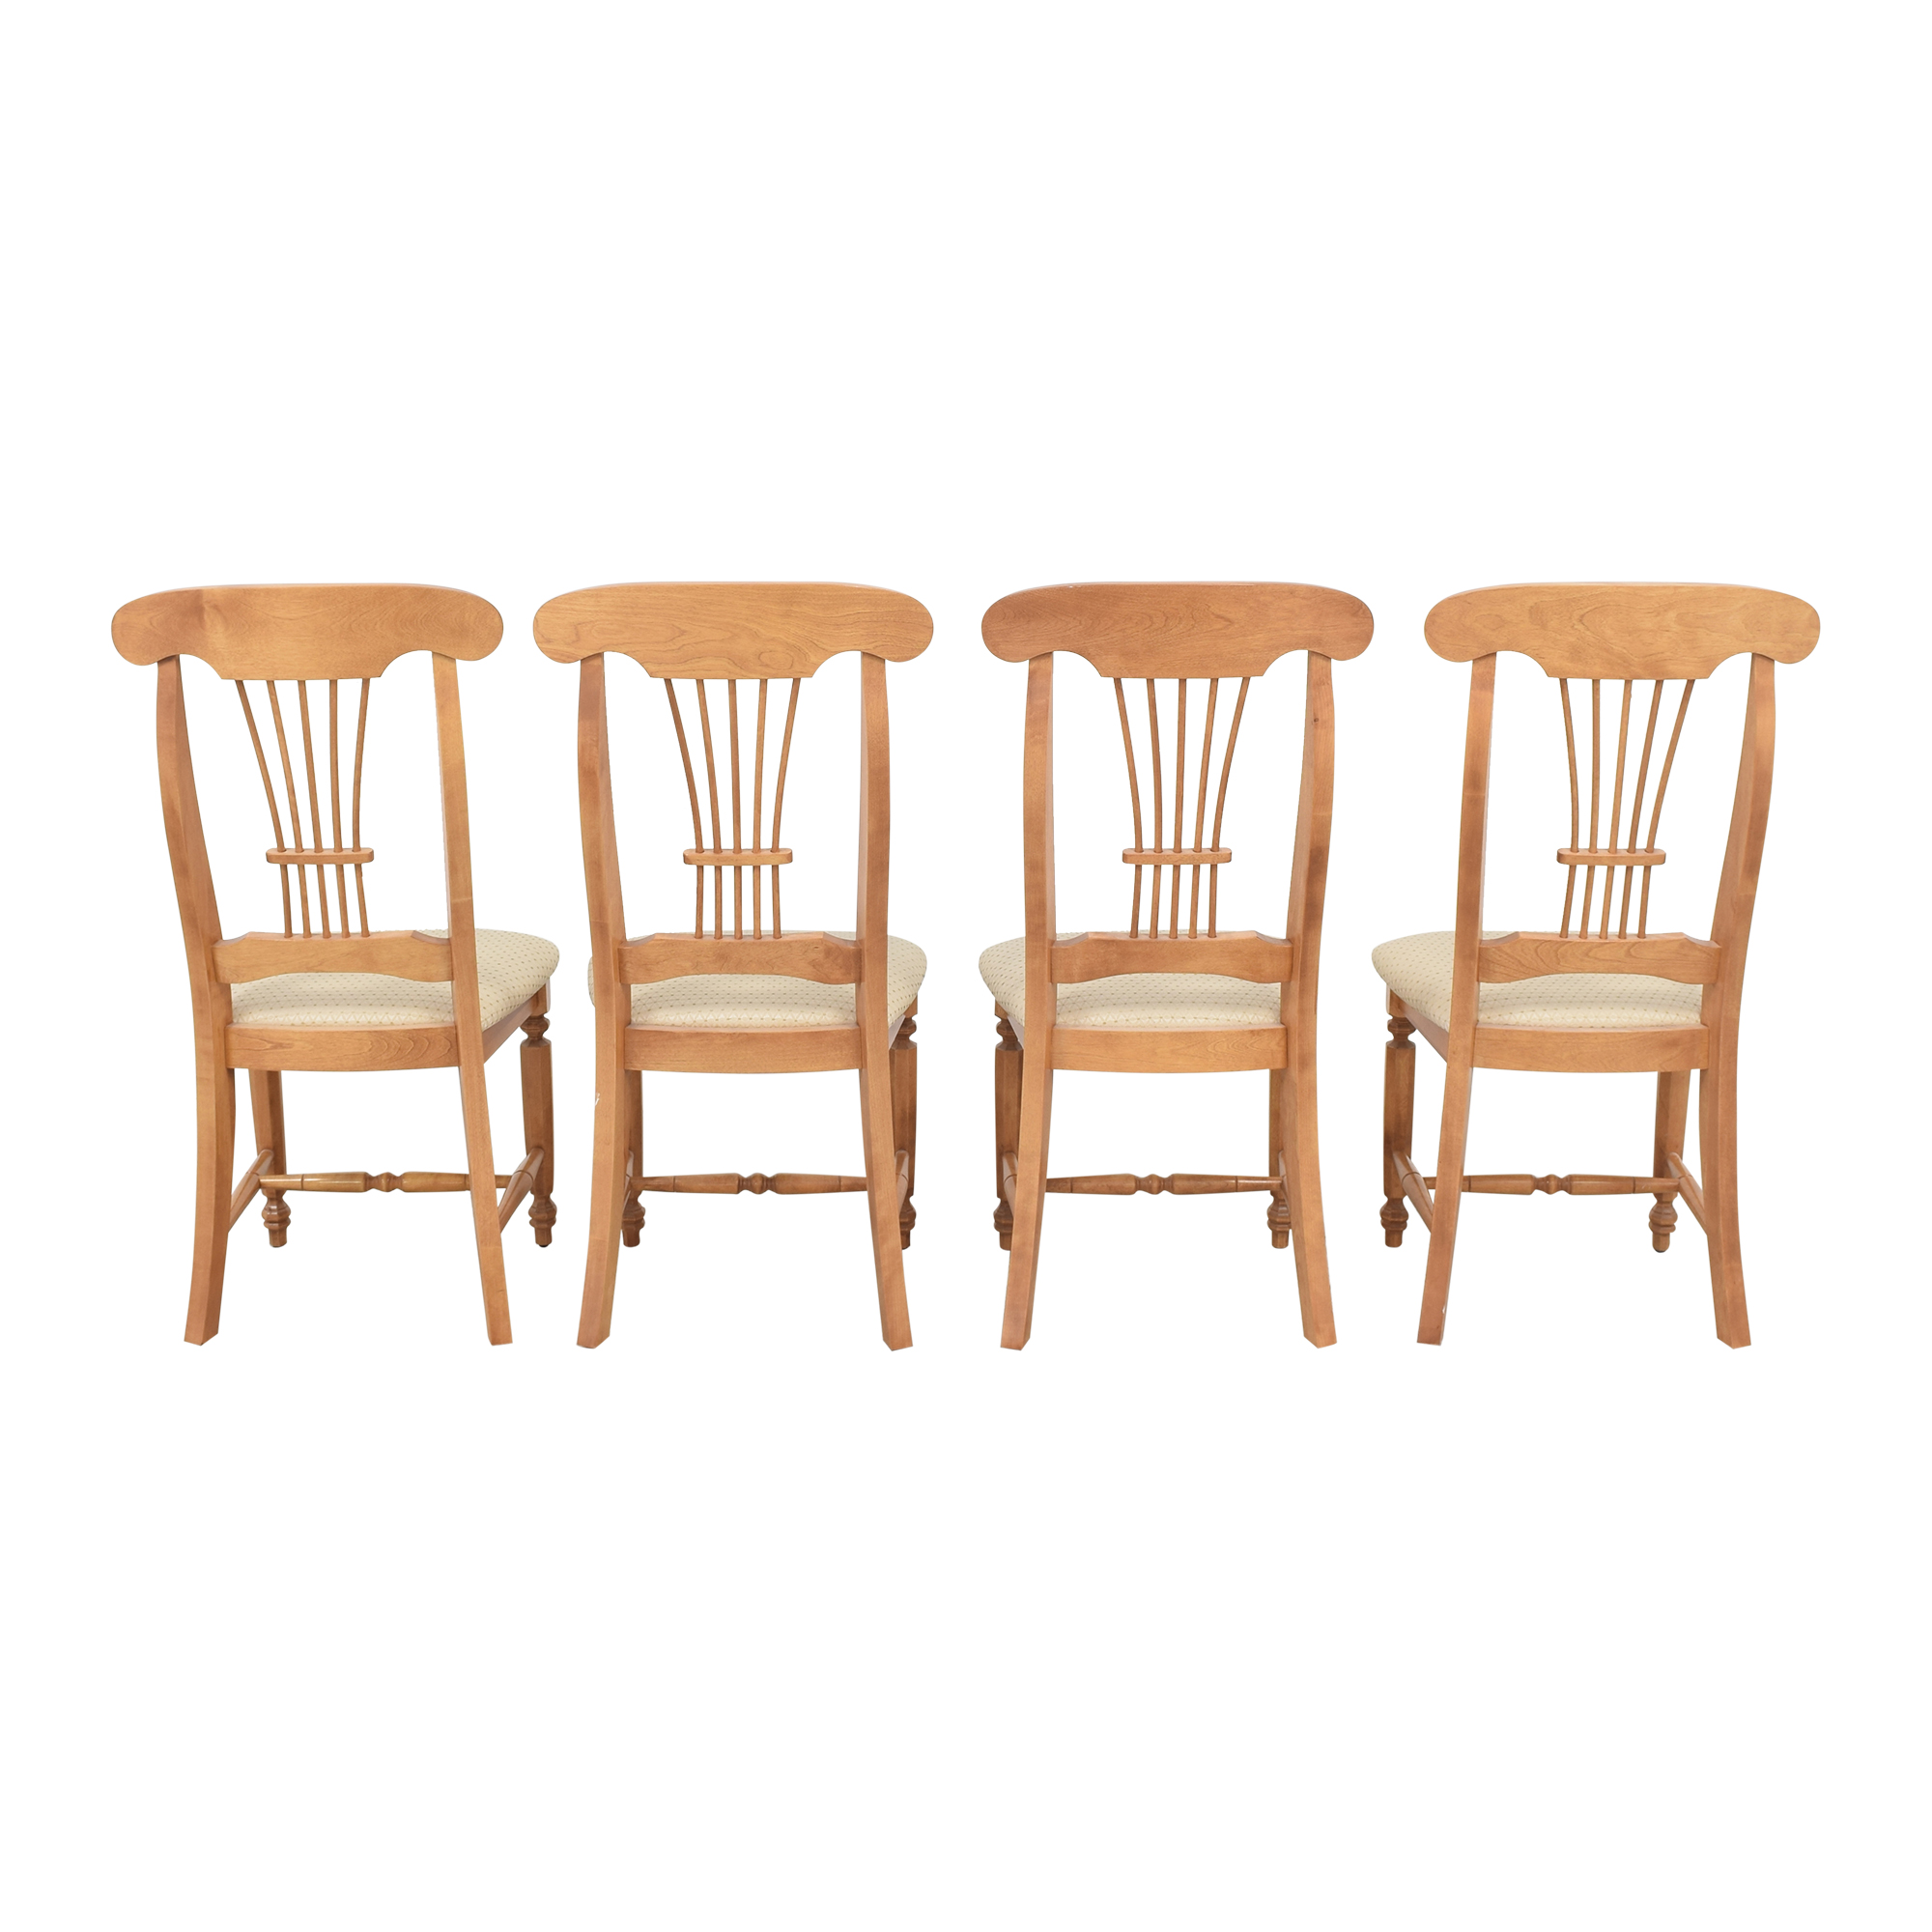 Canadel Canadel Upholstered Dining Chairs nj